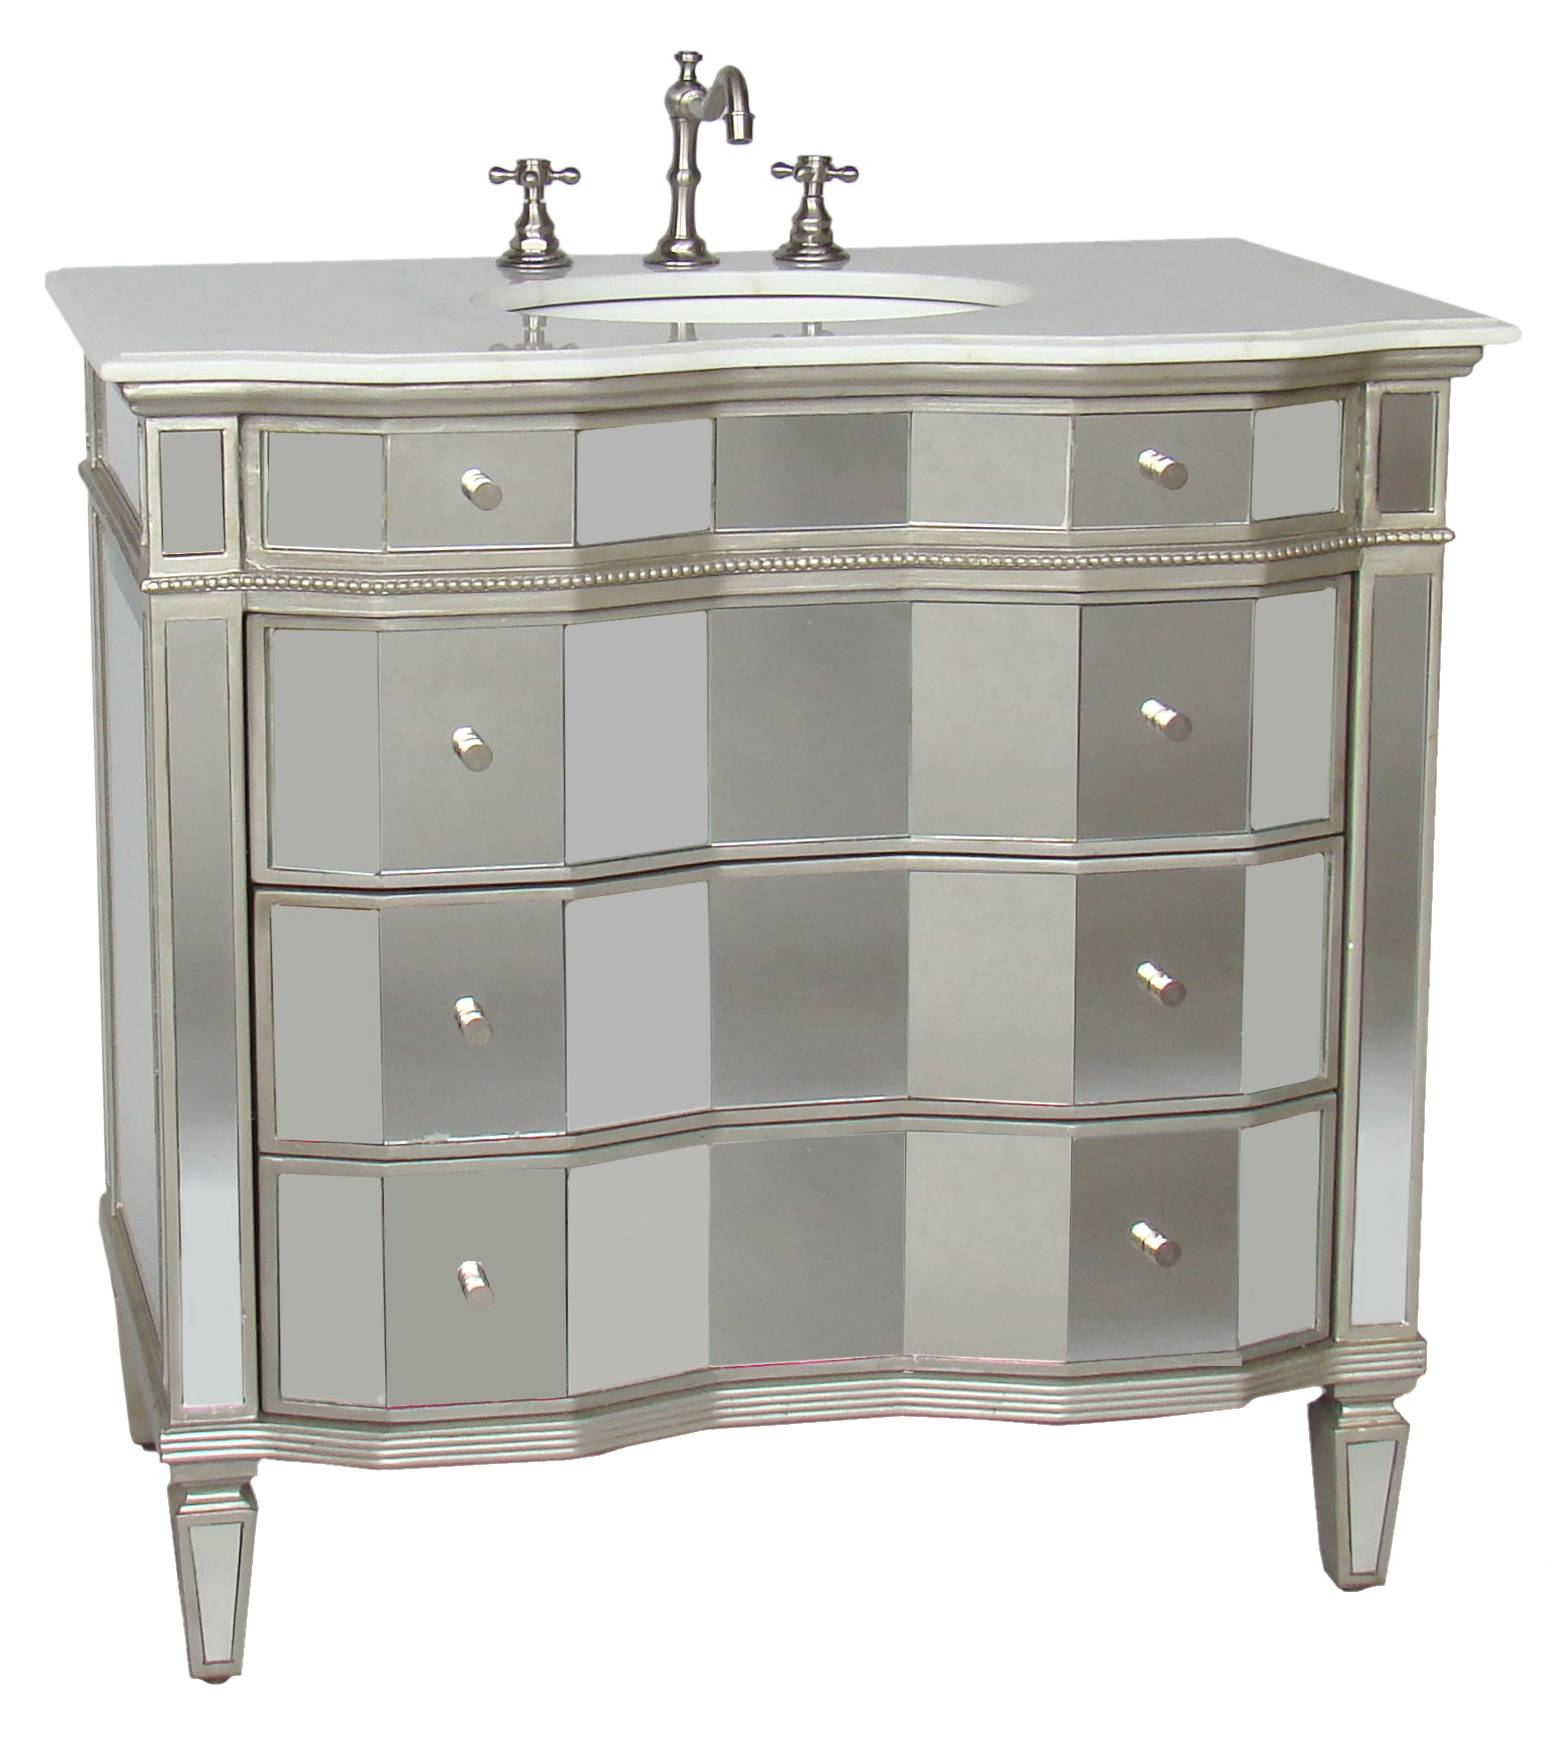 Dazzling mirrored vanity for home furniture and vanity mirror with lights